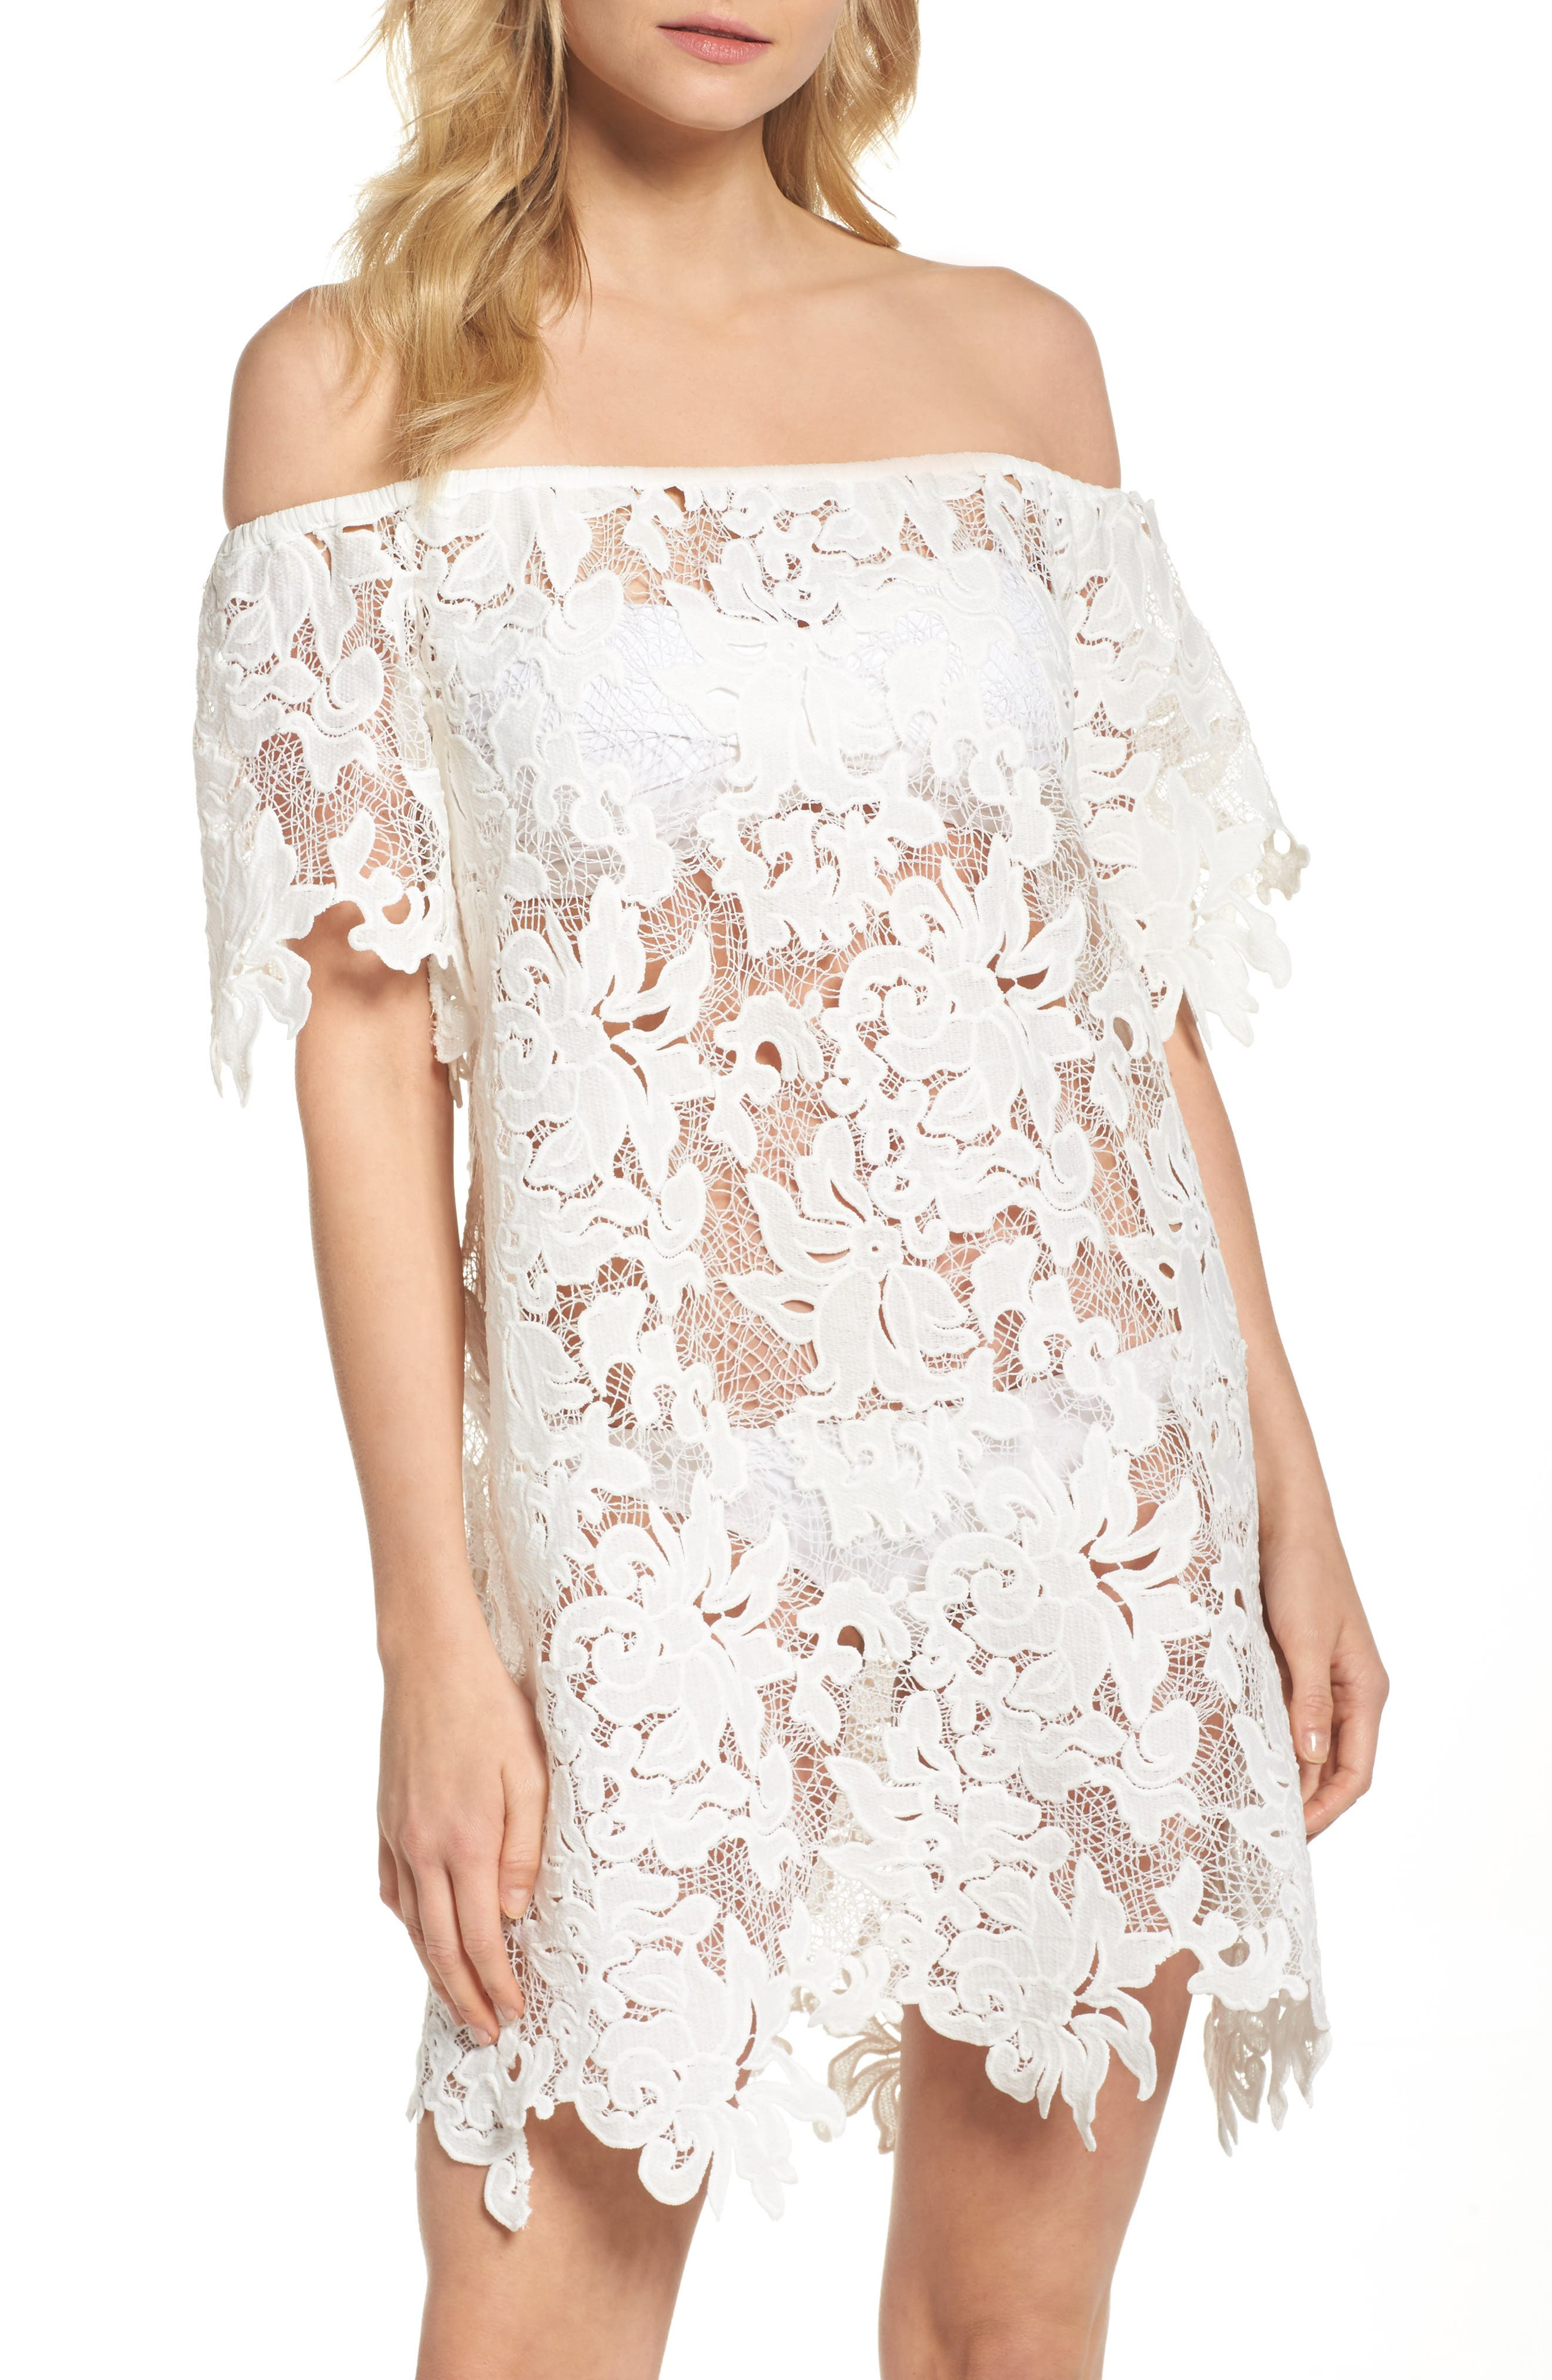 Ode Rosette Lace Cover-Up Dress,                         Main,                         color, White